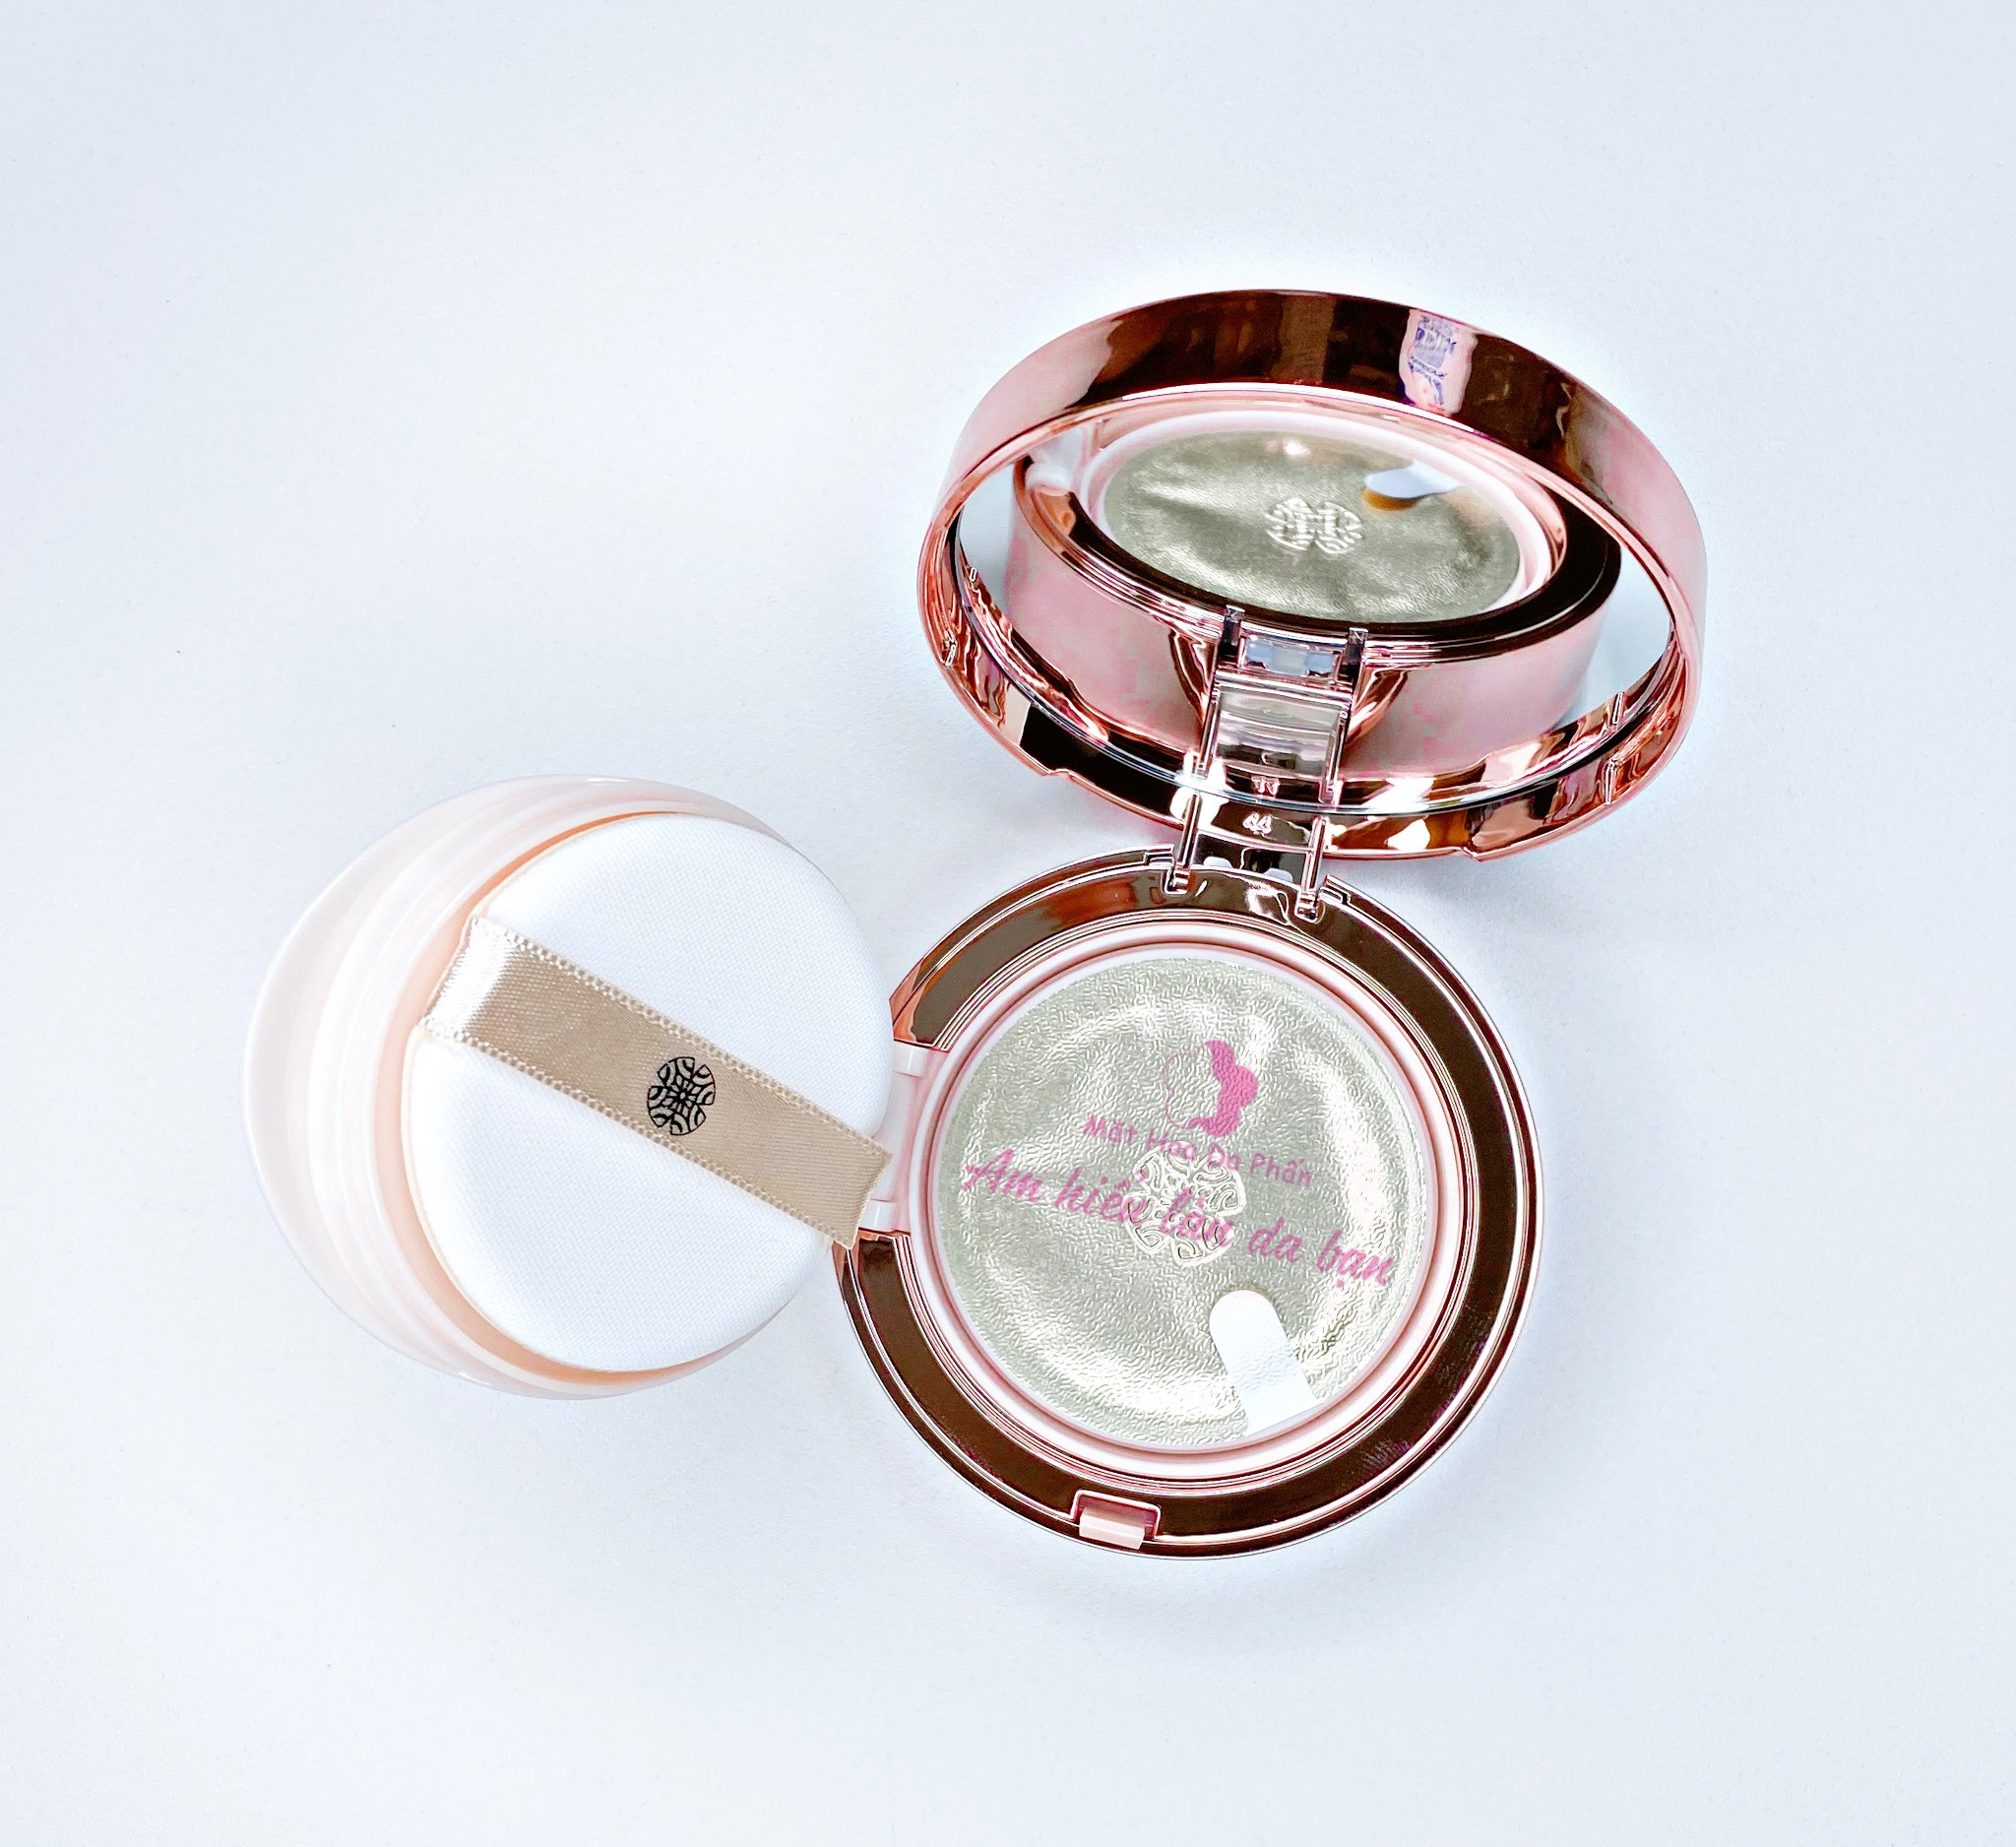 Set OHUI Ultimate Cover Cushion Special Edition #01 Milk Beige